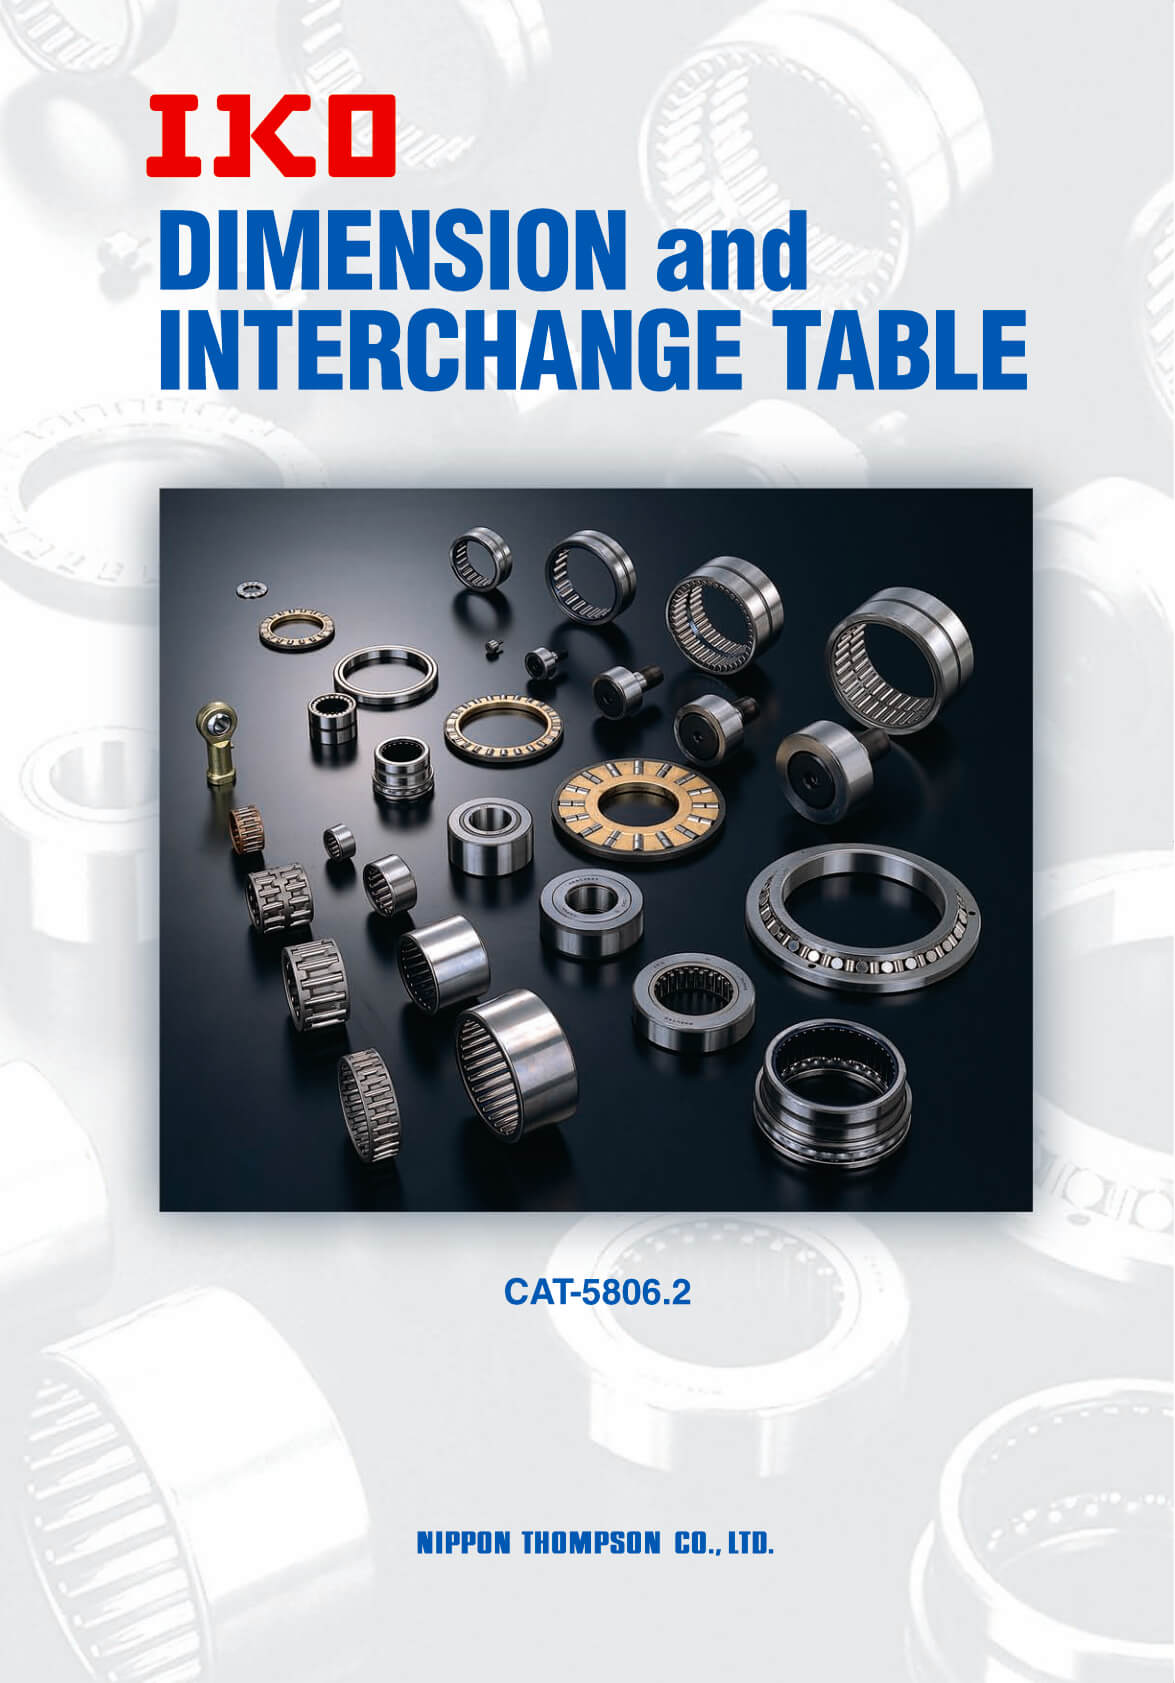 Dimension and Interchange Table